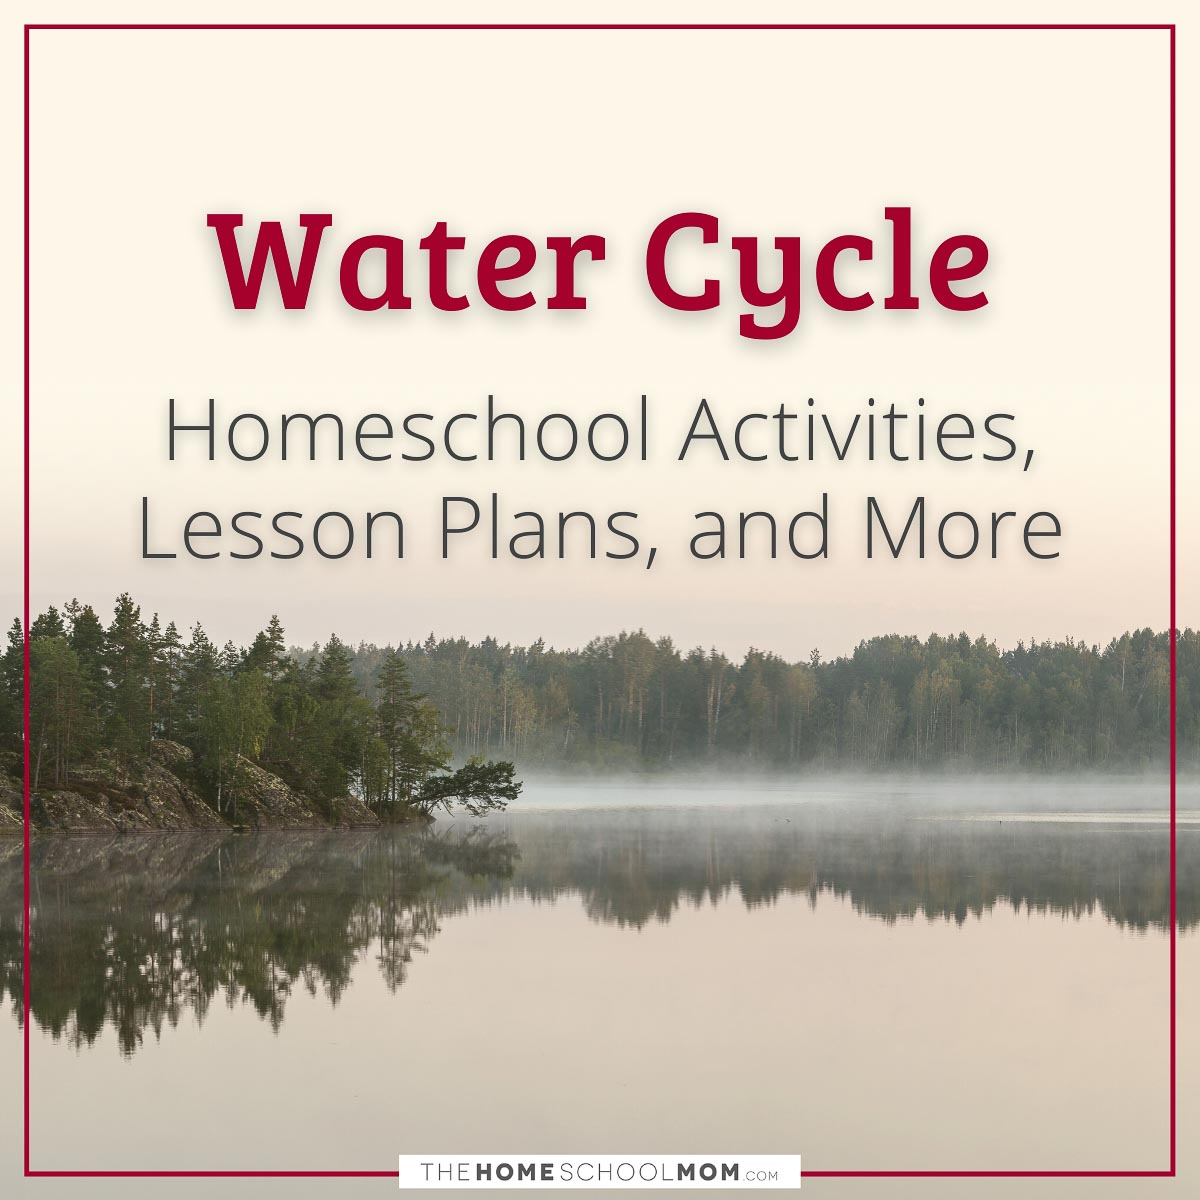 Water Cycle: Homeschool Activities, Lesson Plans, and More